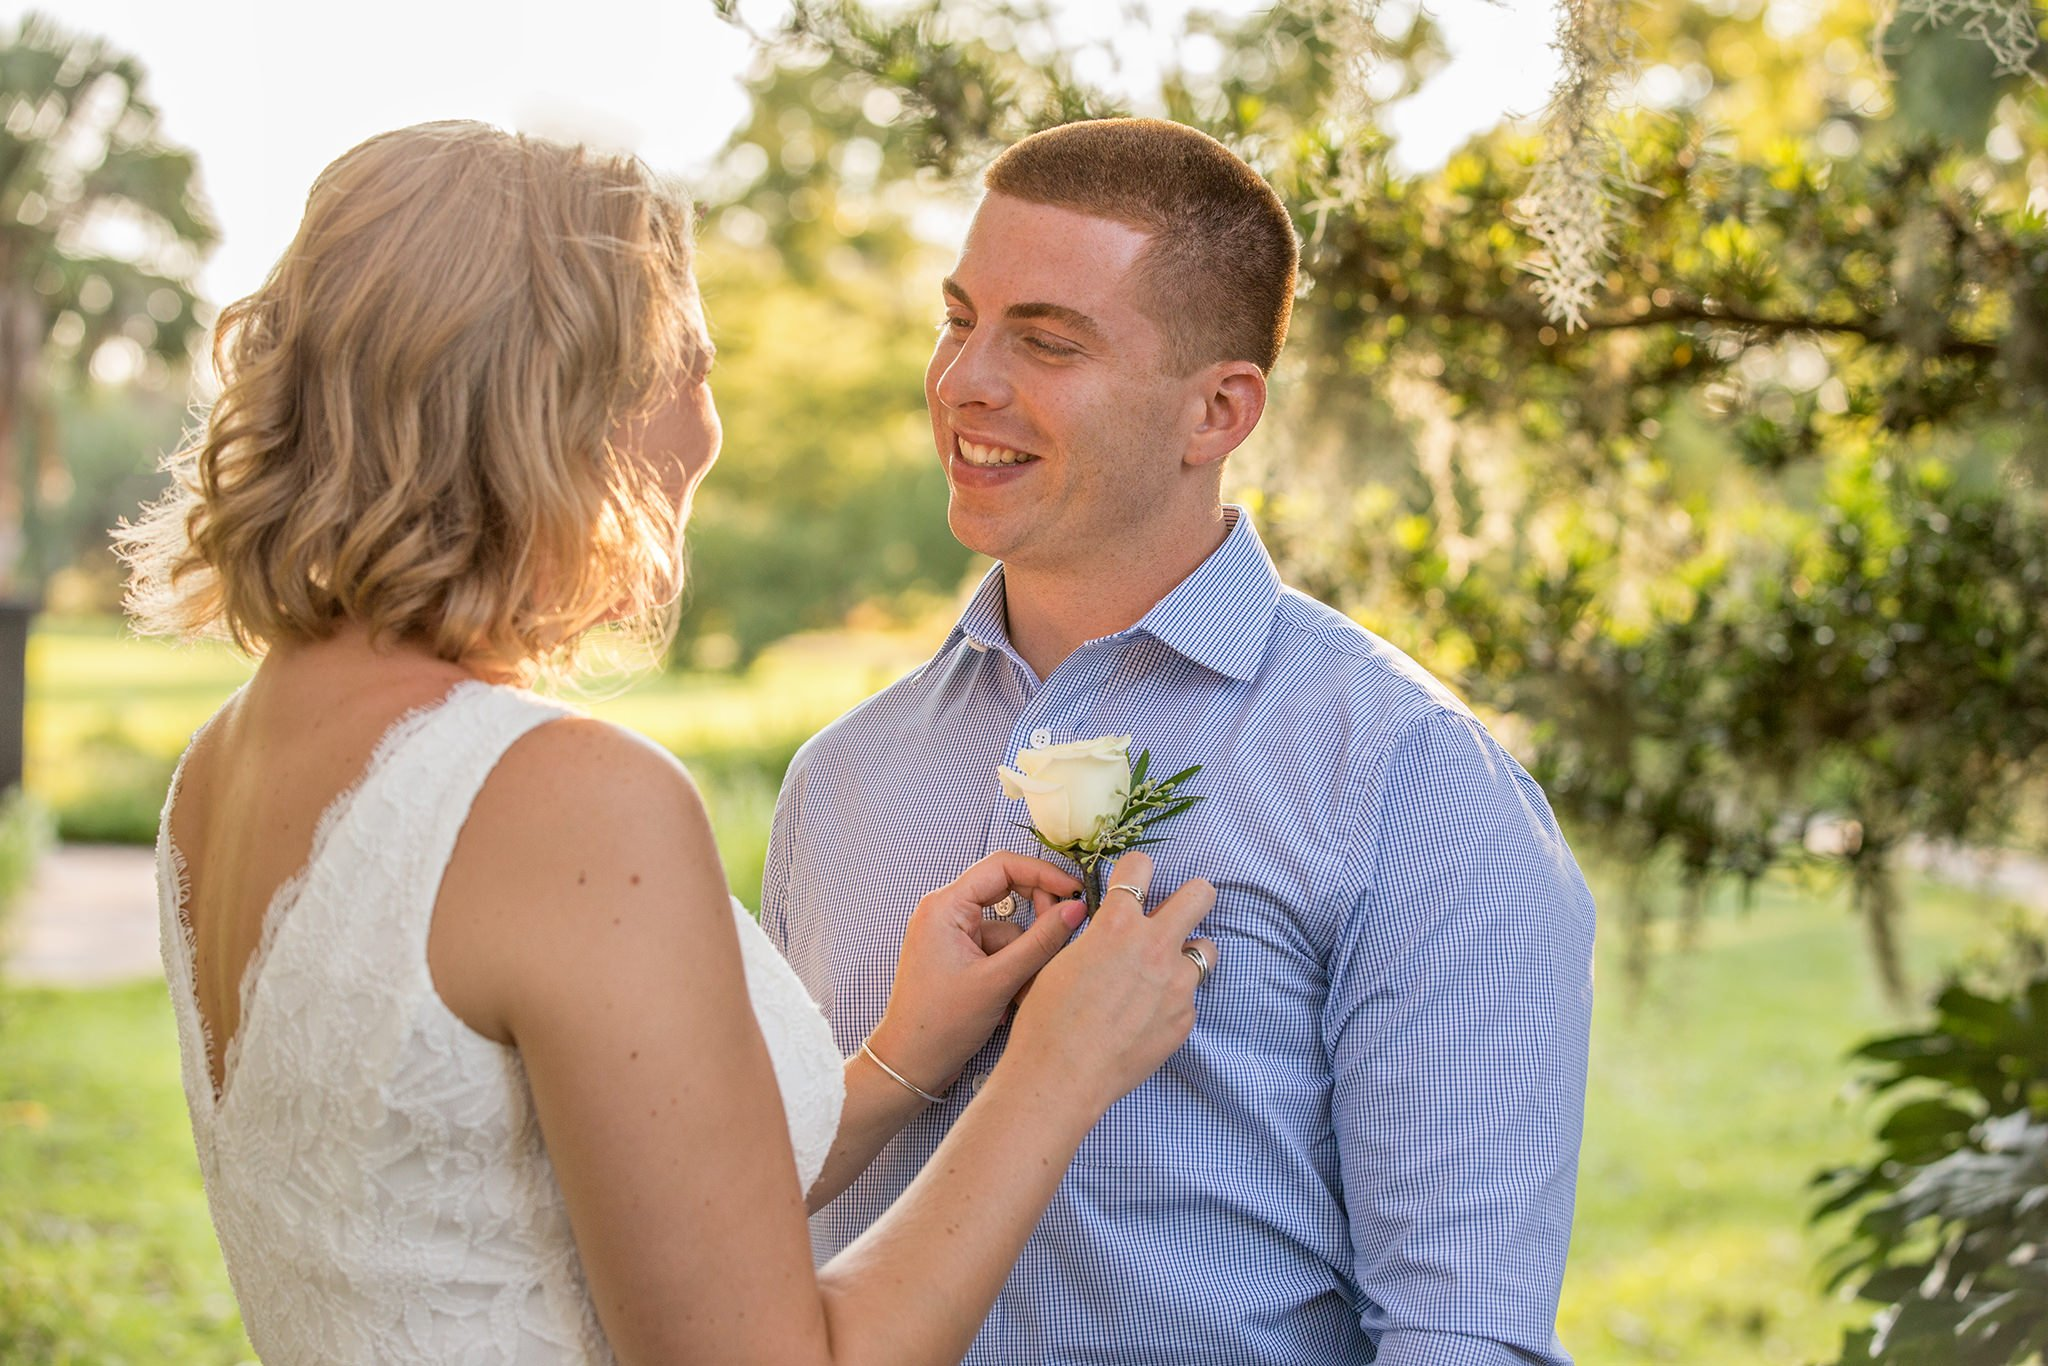 The bride is fixing the flower on the groom's shirt